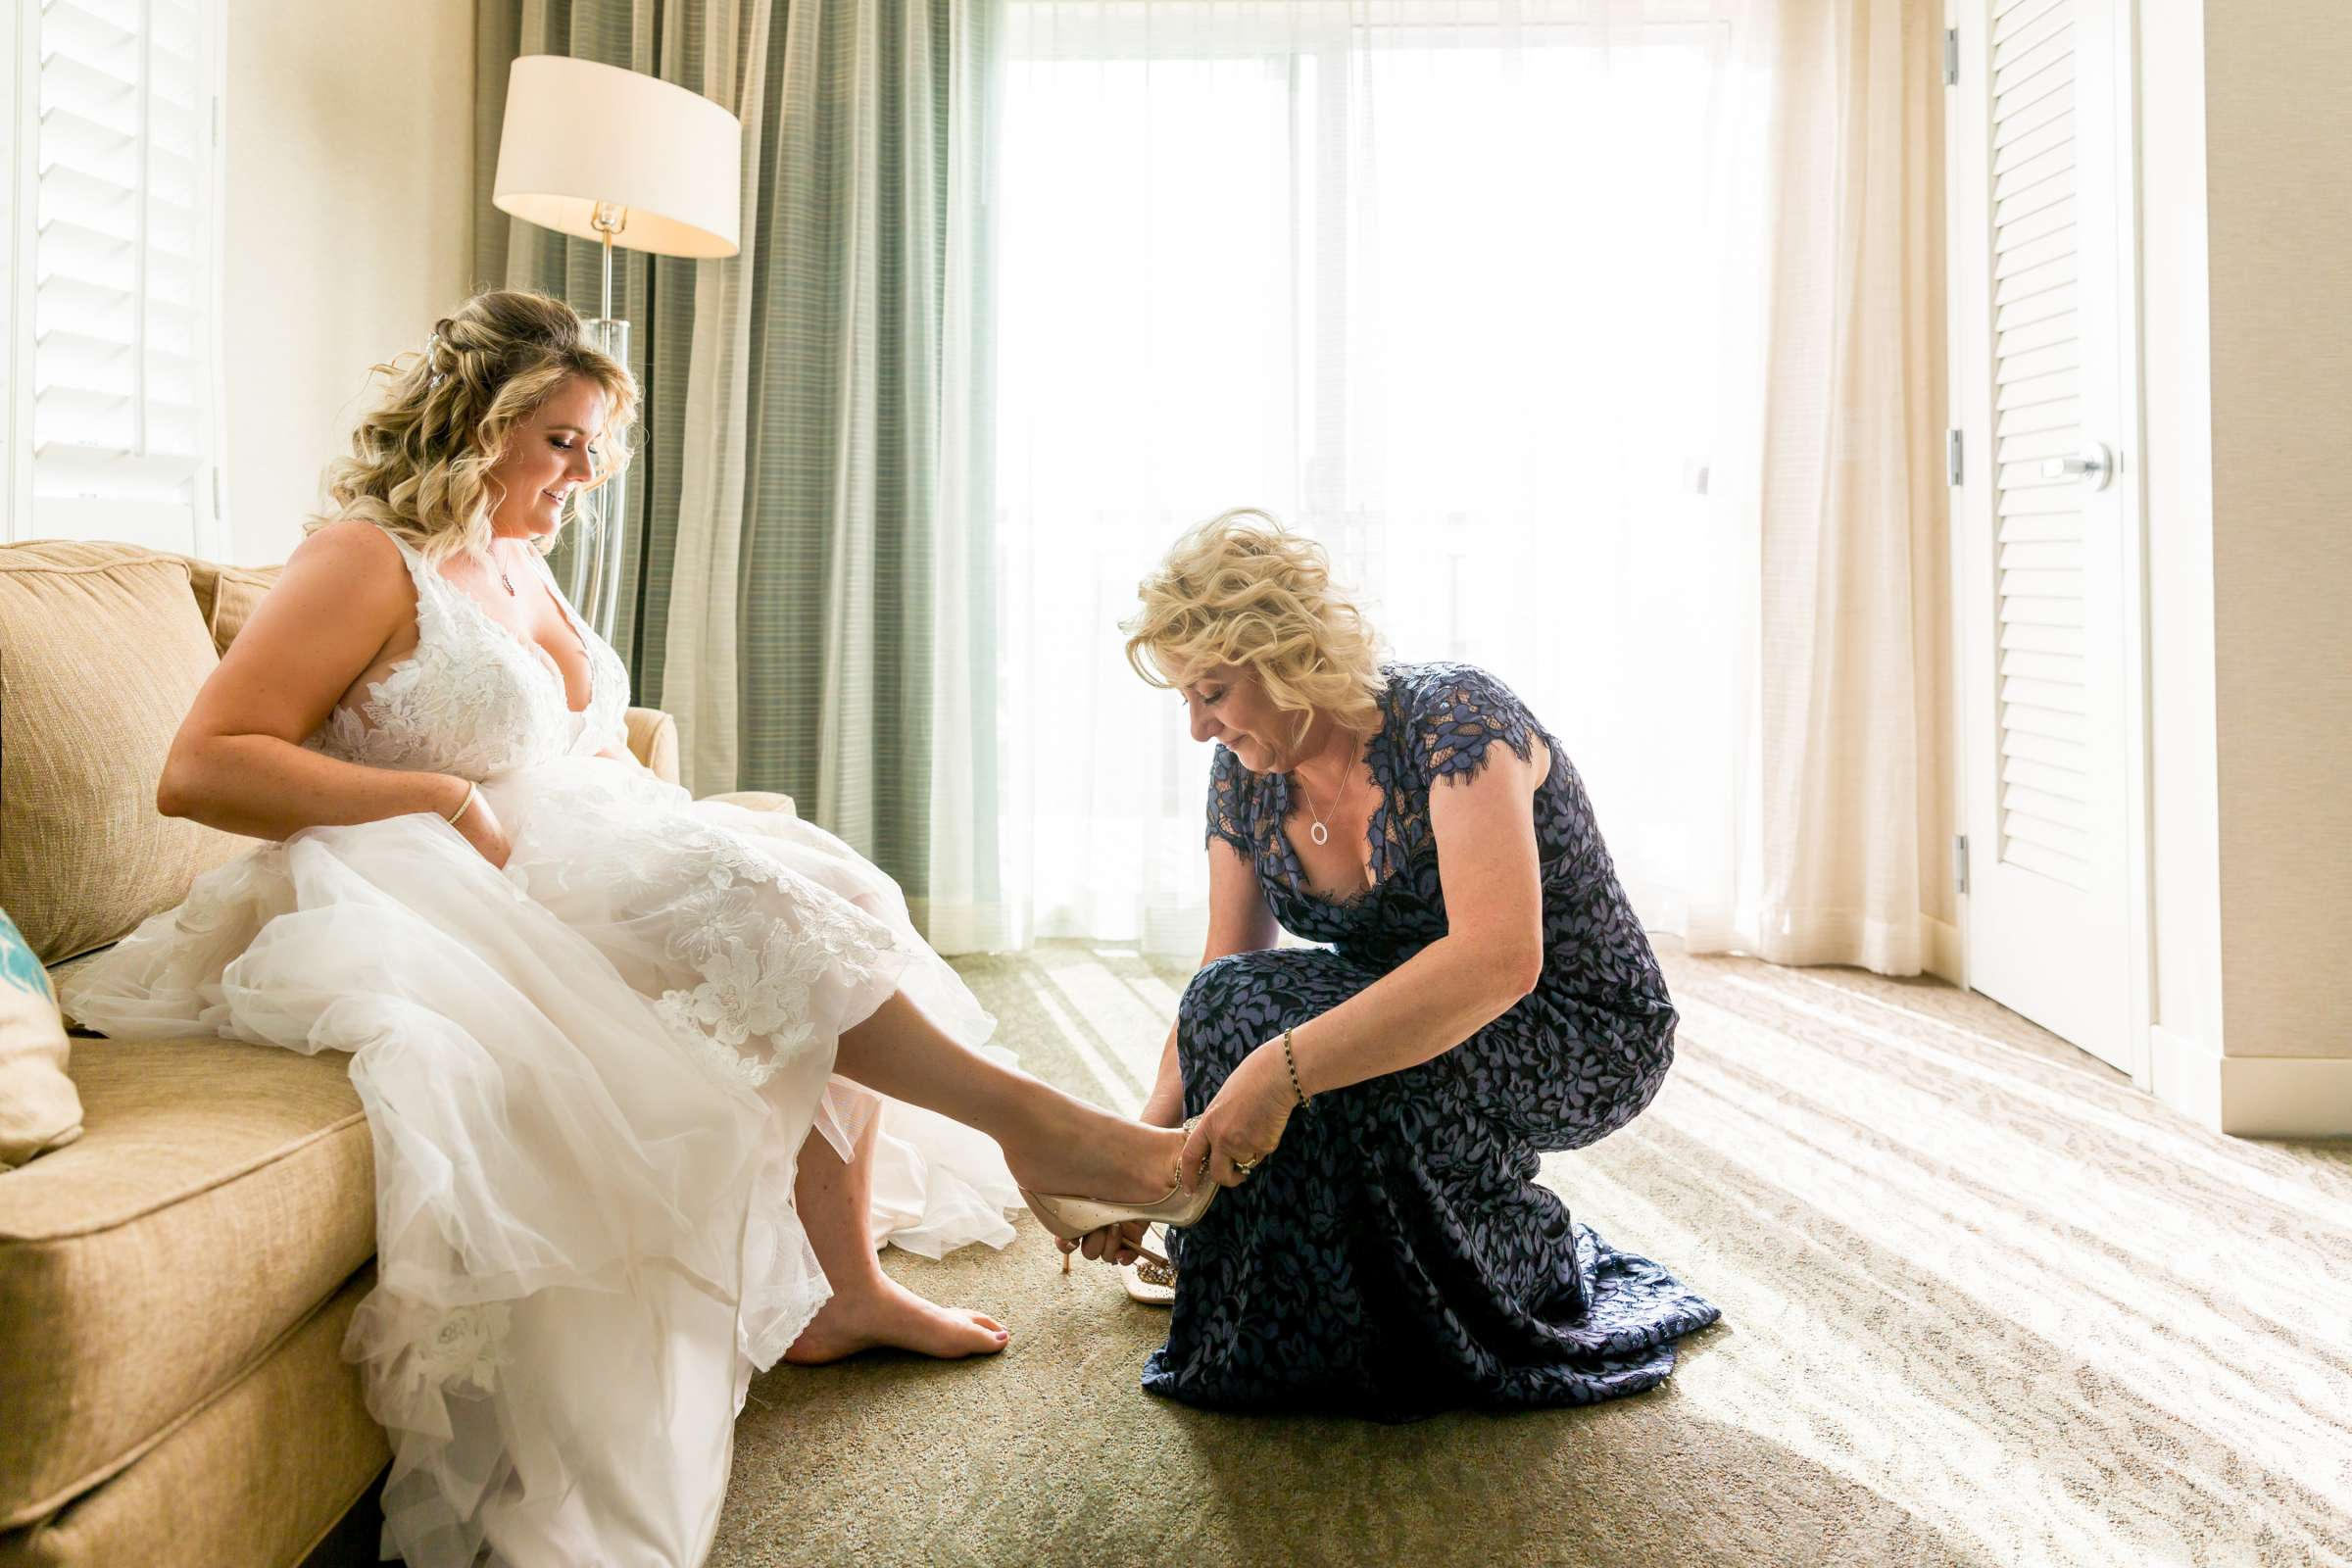 Cape Rey Carlsbad, A Hilton Resort Wedding, Michelle and Justin Wedding Photo #41 by True Photography